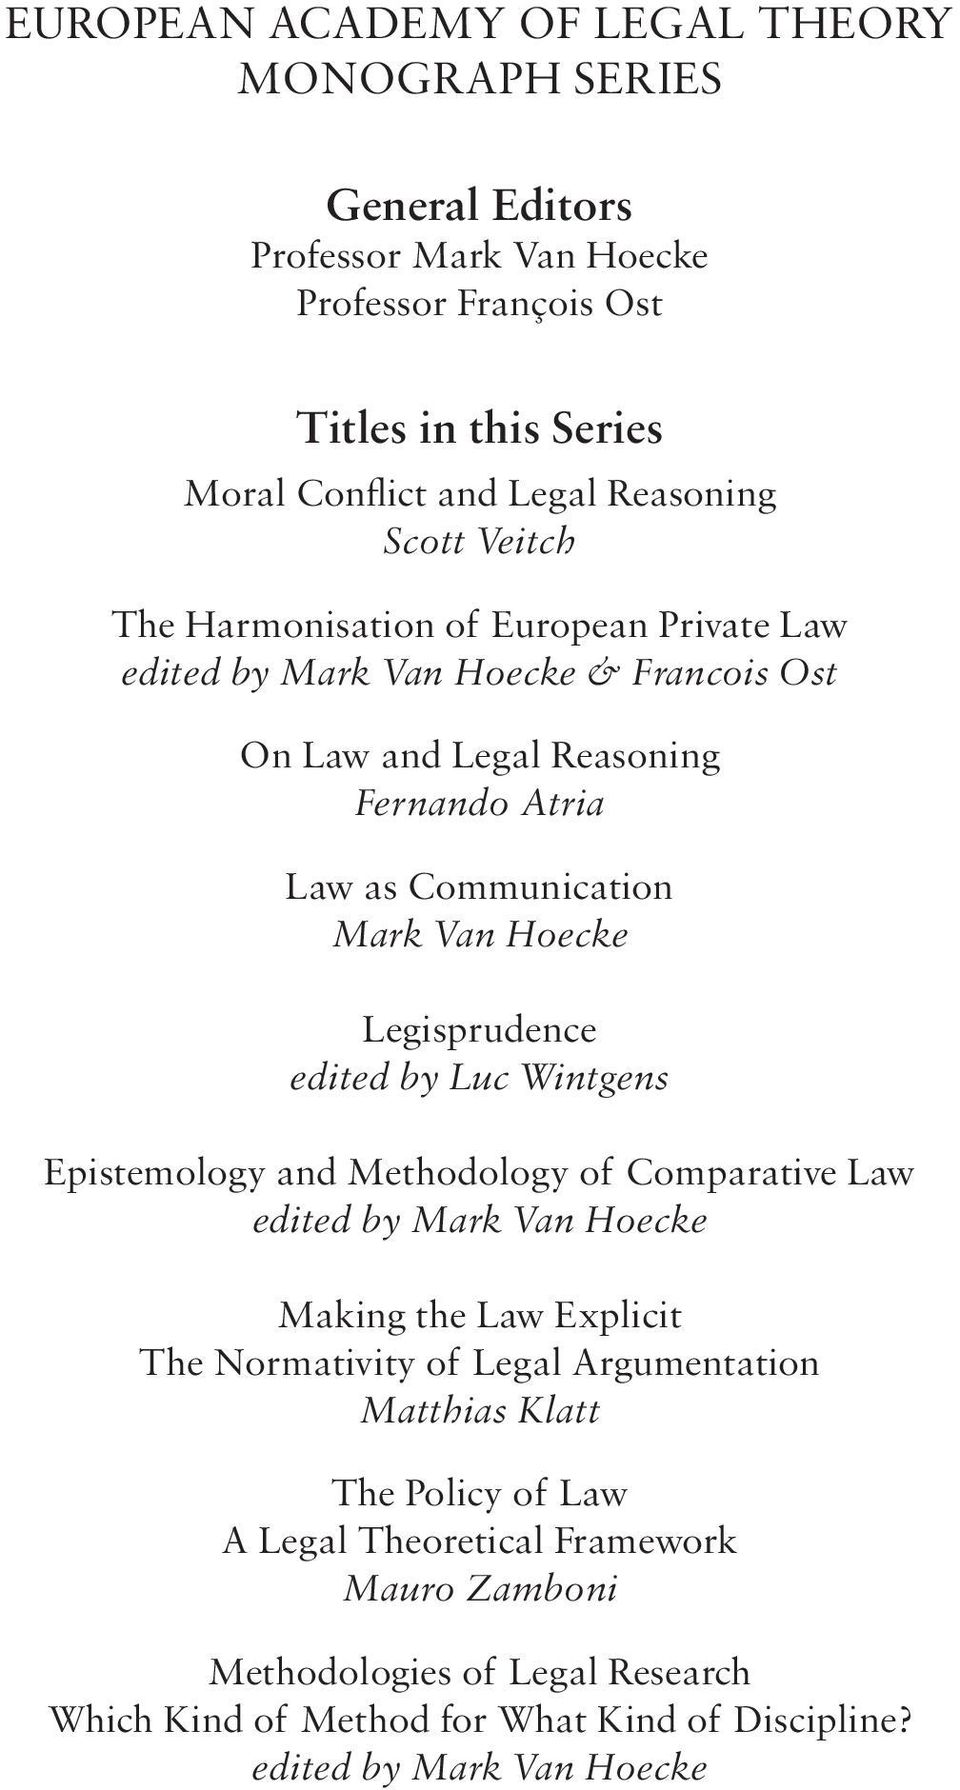 Legisprudence edited by Luc Wintgens Epistemology and Methodology of Comparative Law edited by Mark Van Hoecke Making the Law Explicit The Normativity of Legal Argumentation